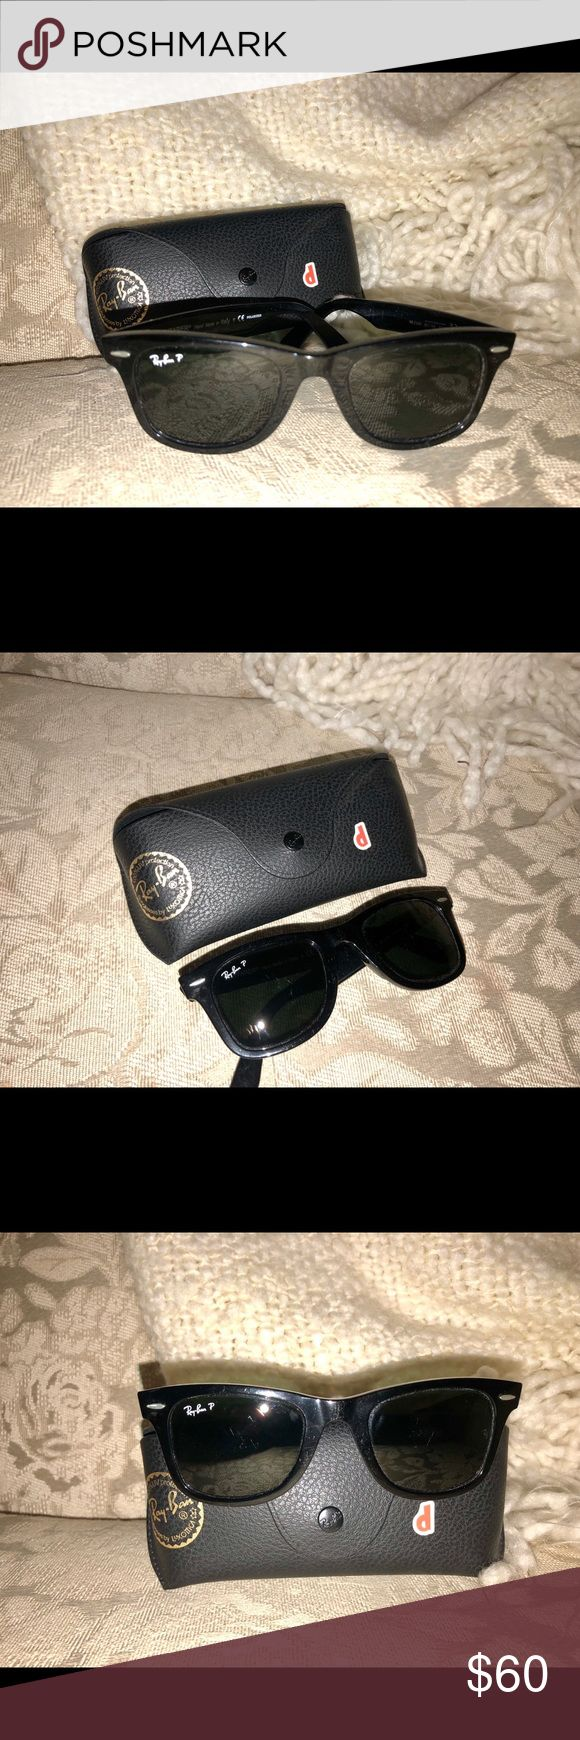 Authentic Polarized Ray-Ban Wayfarer Sunglasses Ray-Ban polarized black wayfarer sunglasses, scratched slightly as shown in the pictures but still in good condition! Ray-Ban Accessories Sunglasses